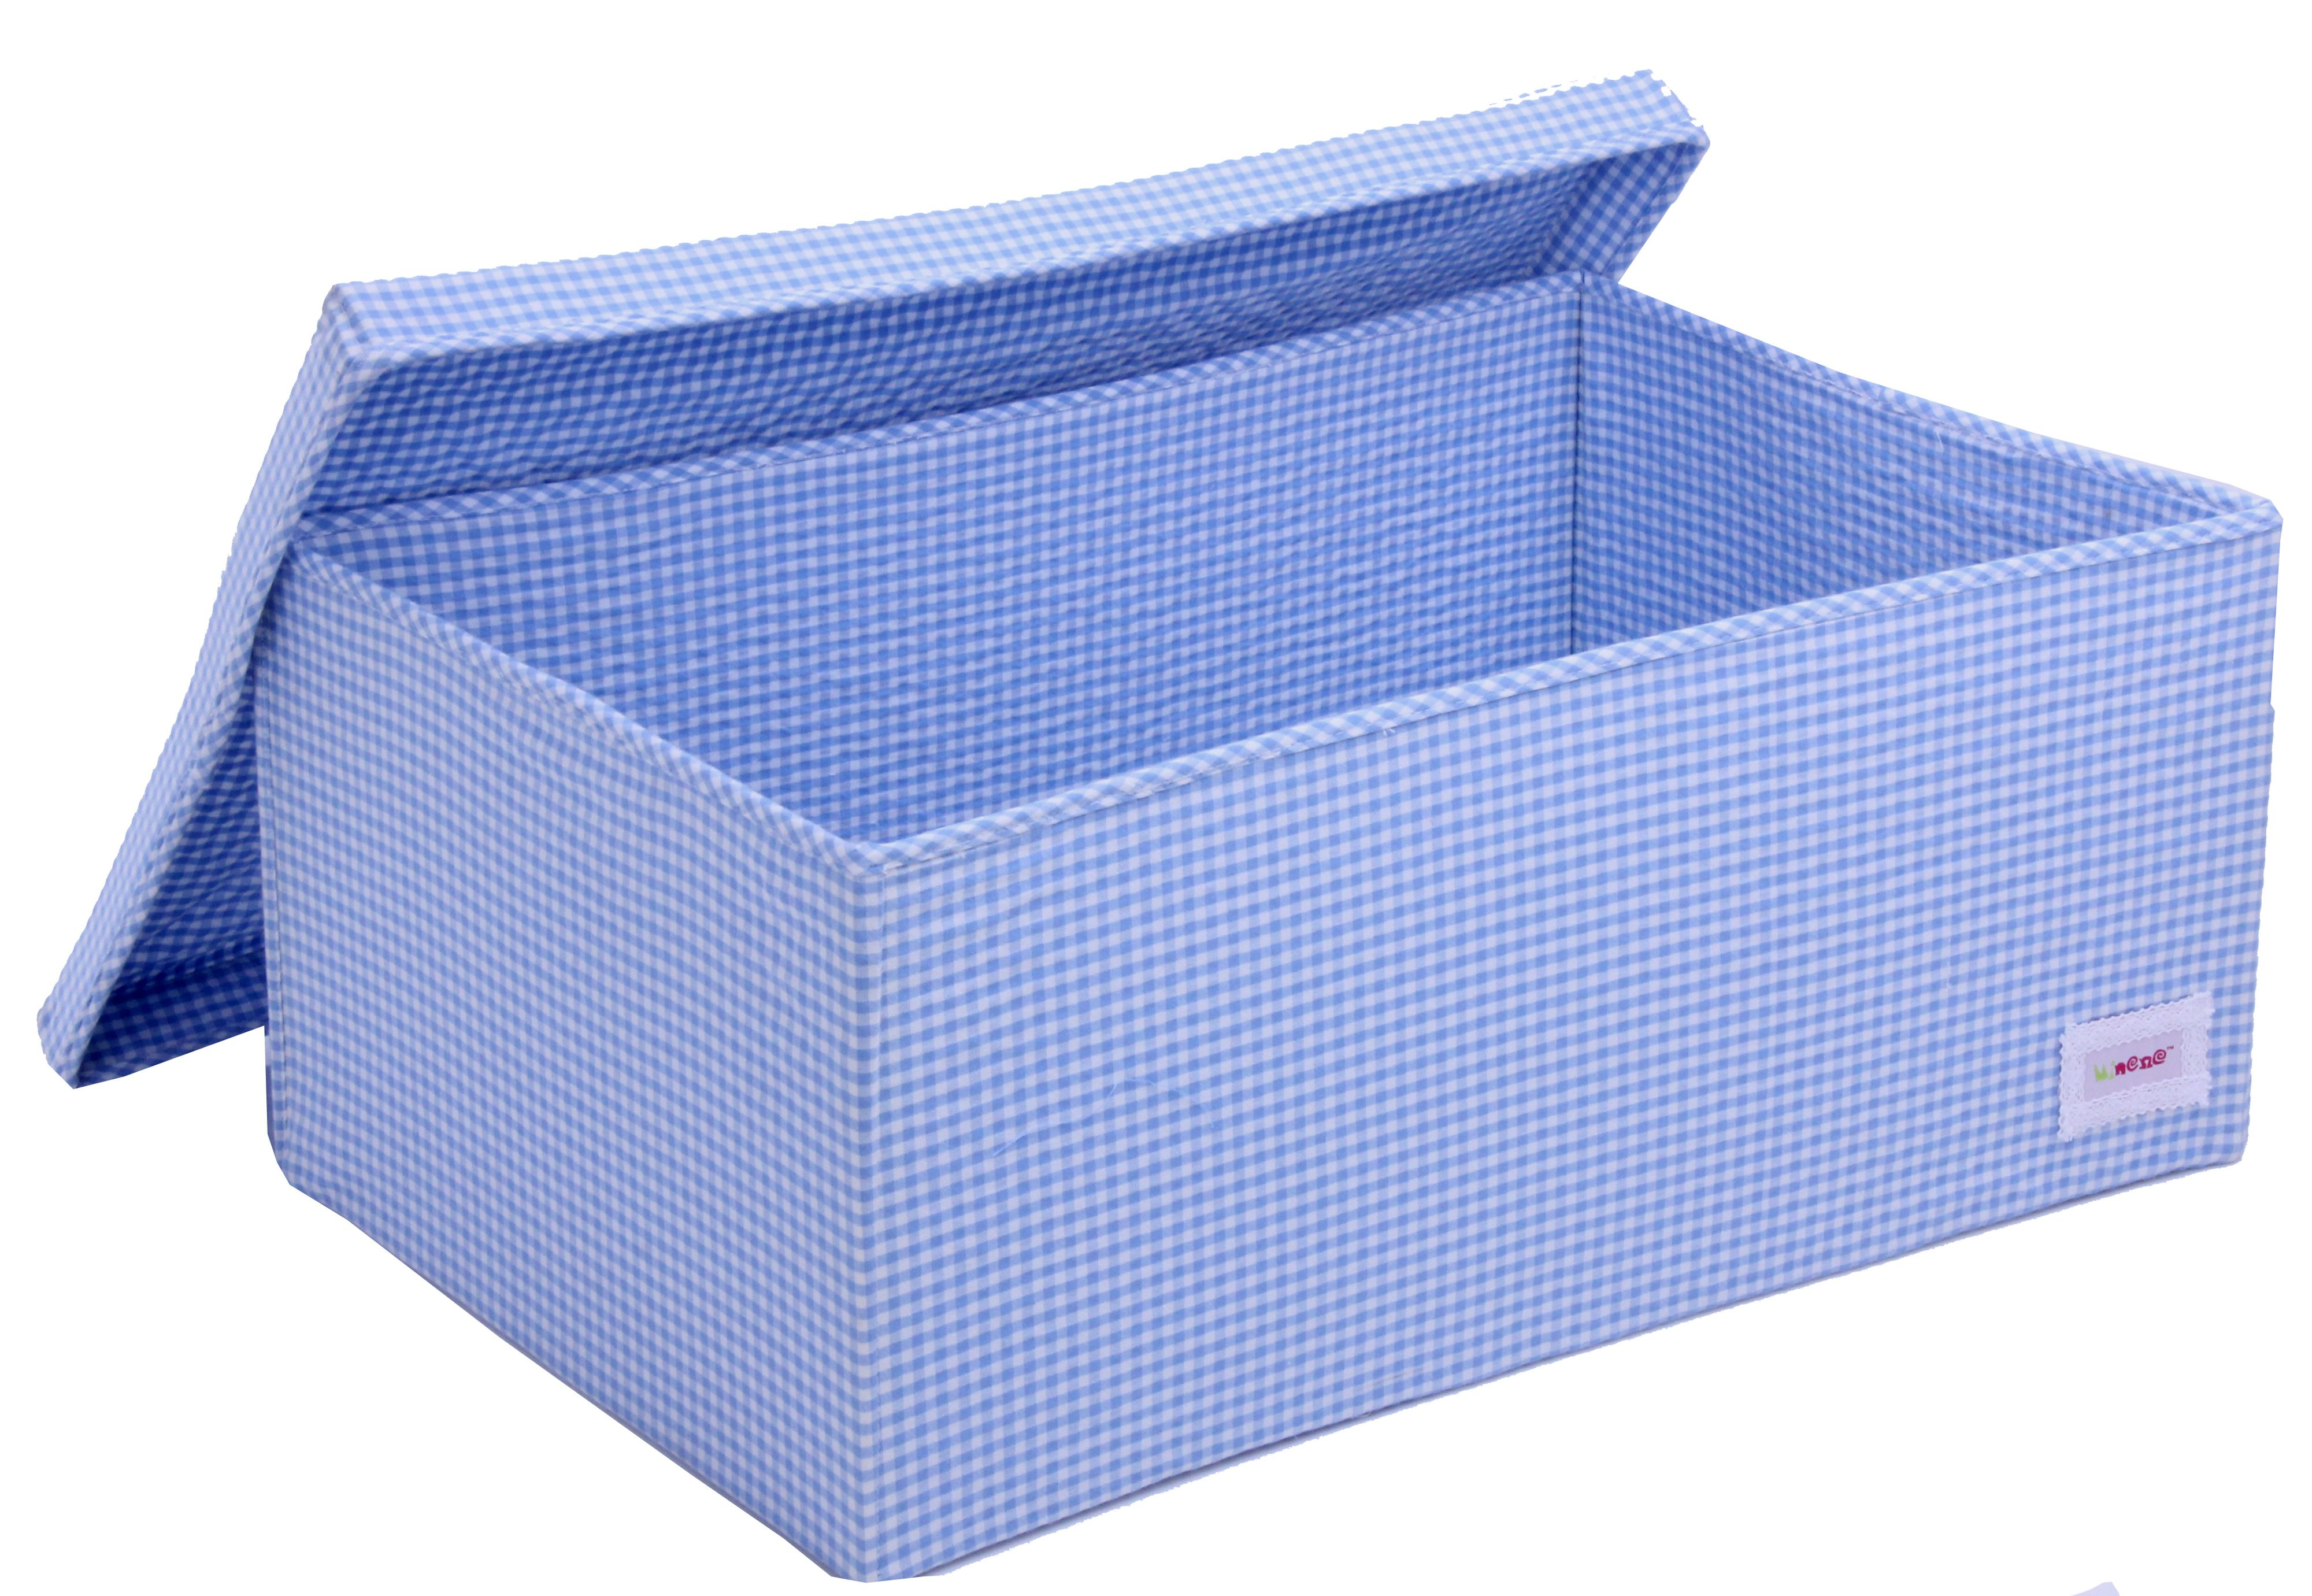 Large underbed storage box